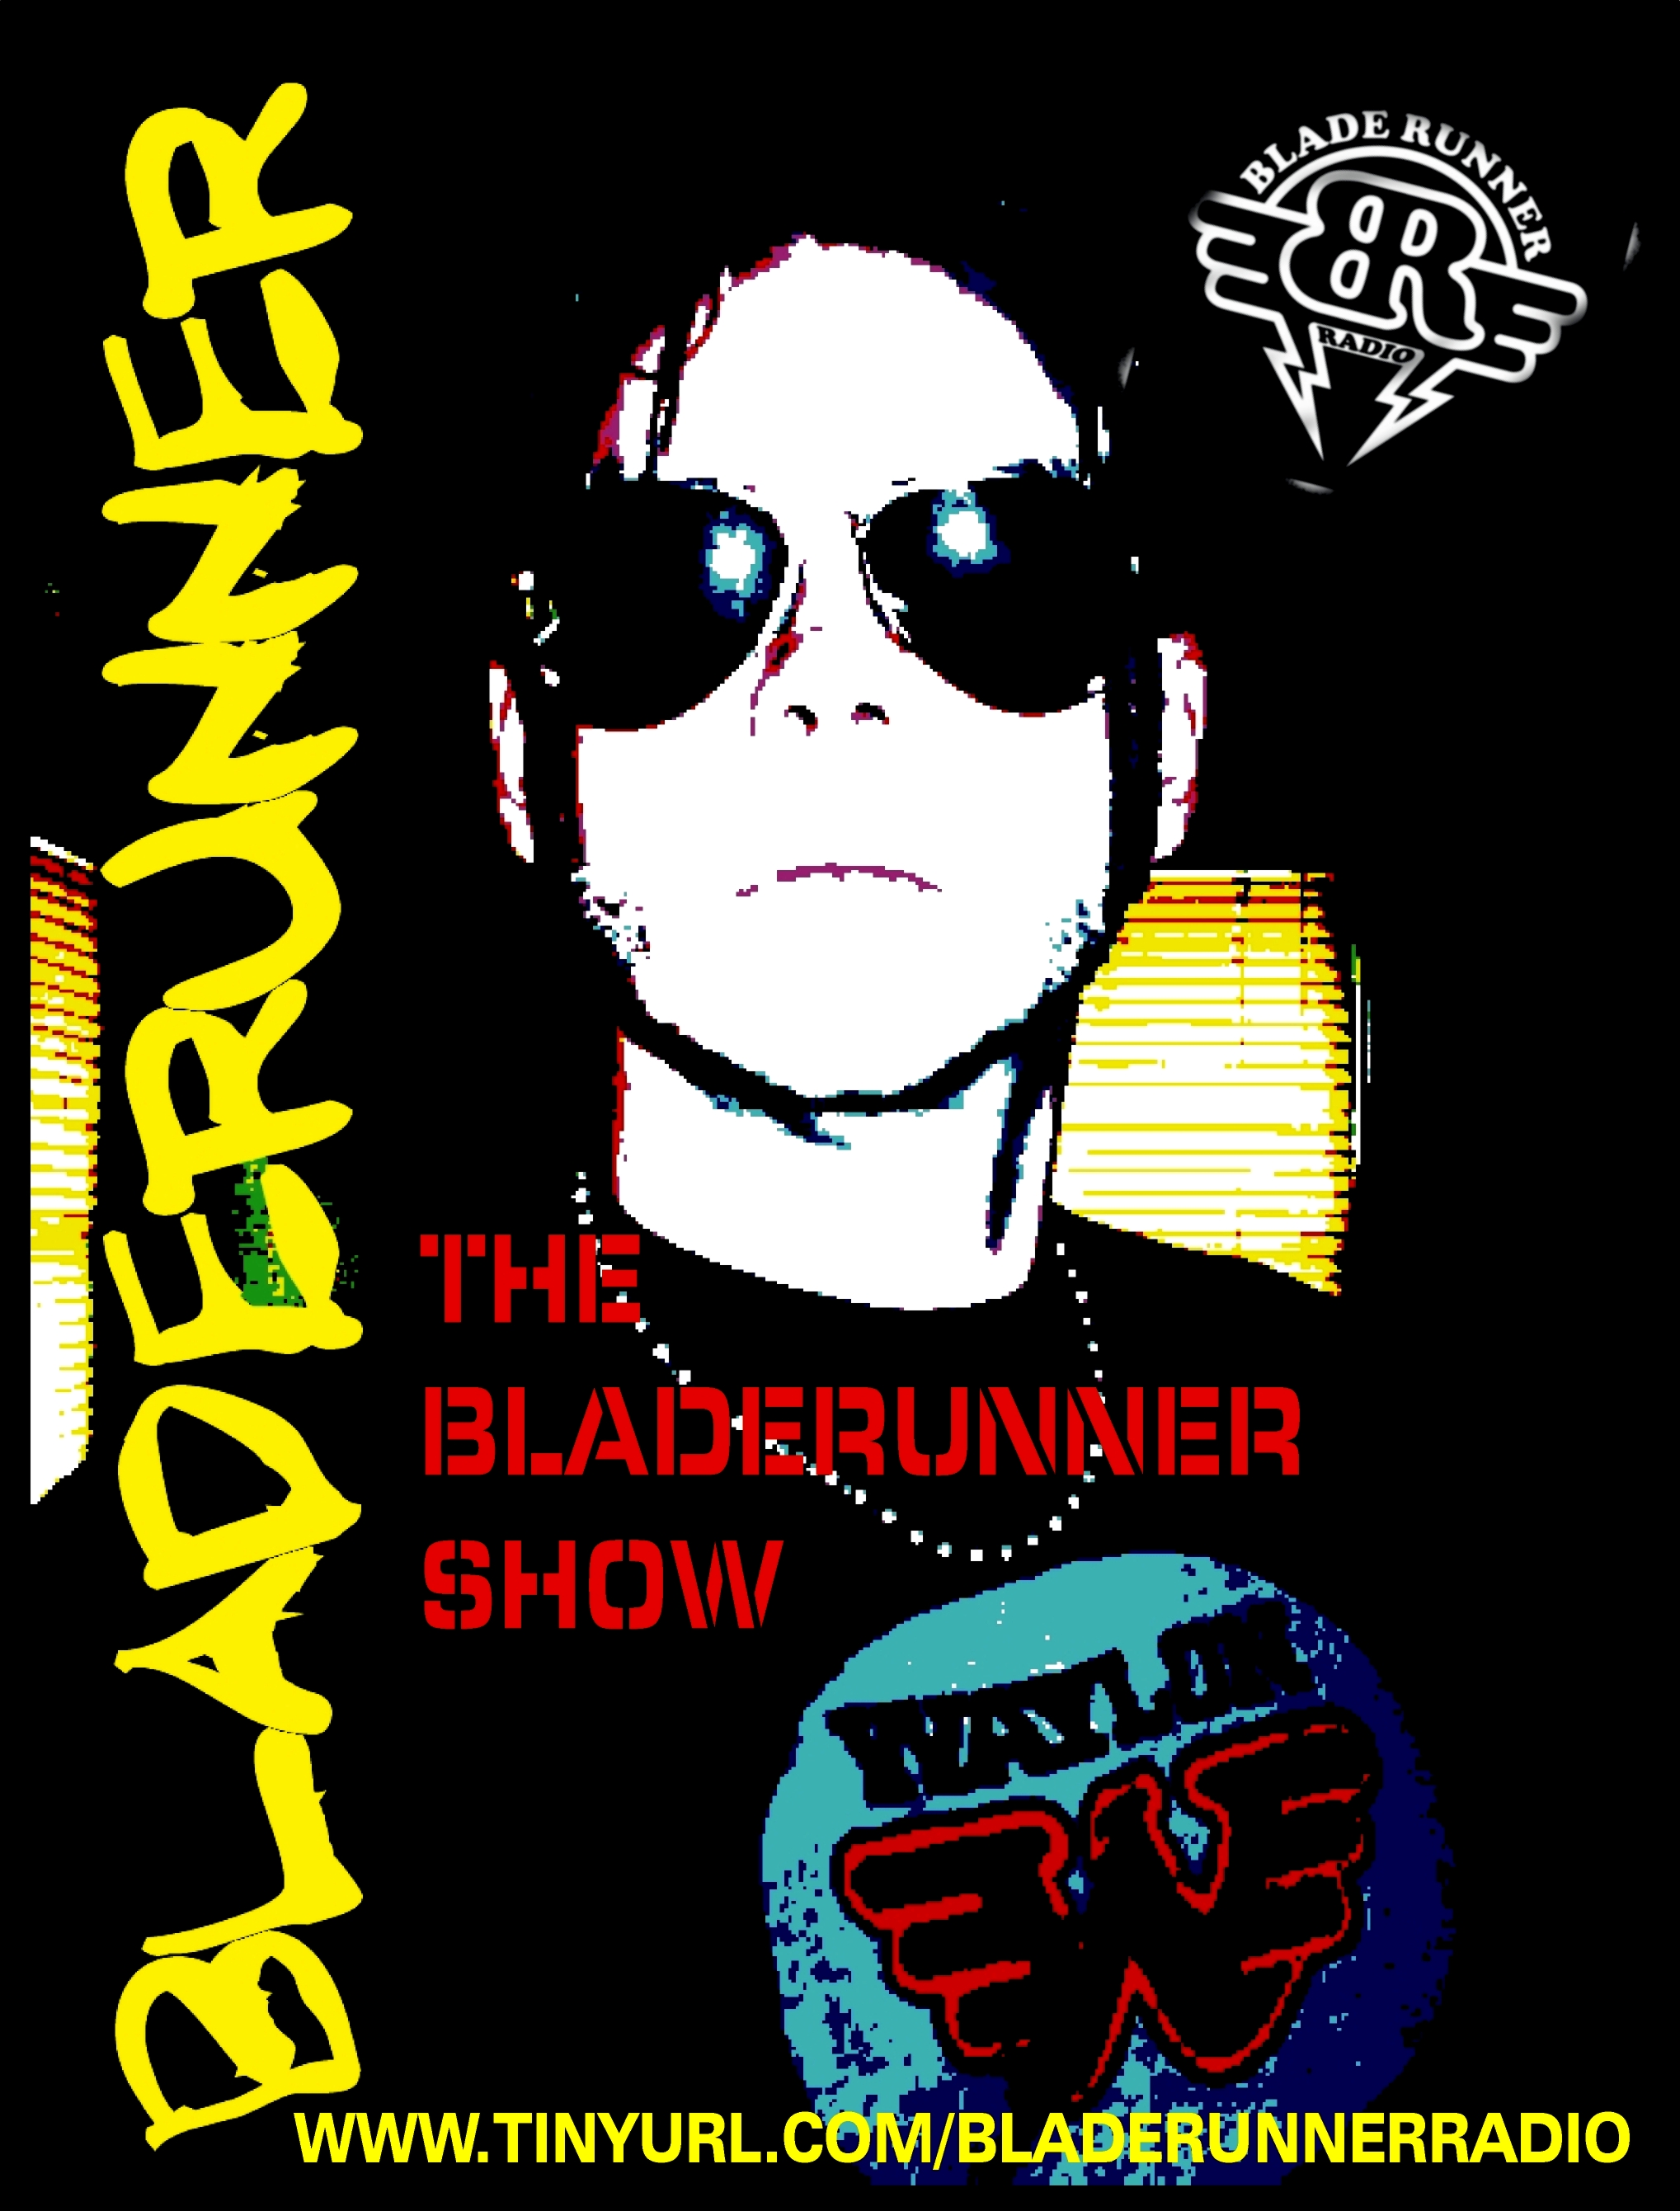 BLADERUNNER SHOW POSTERS 2